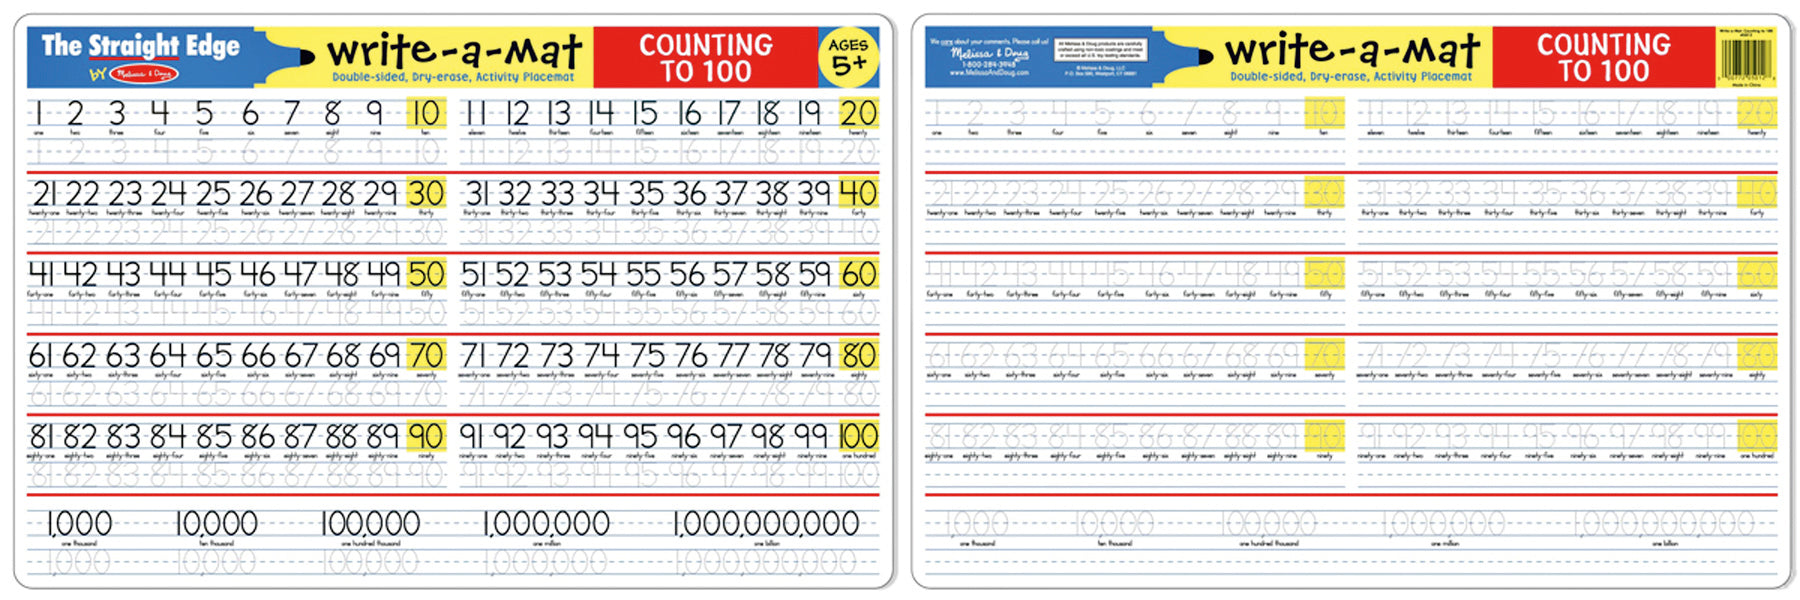 Counting to 100 Write-A-Mat Melissa & Doug